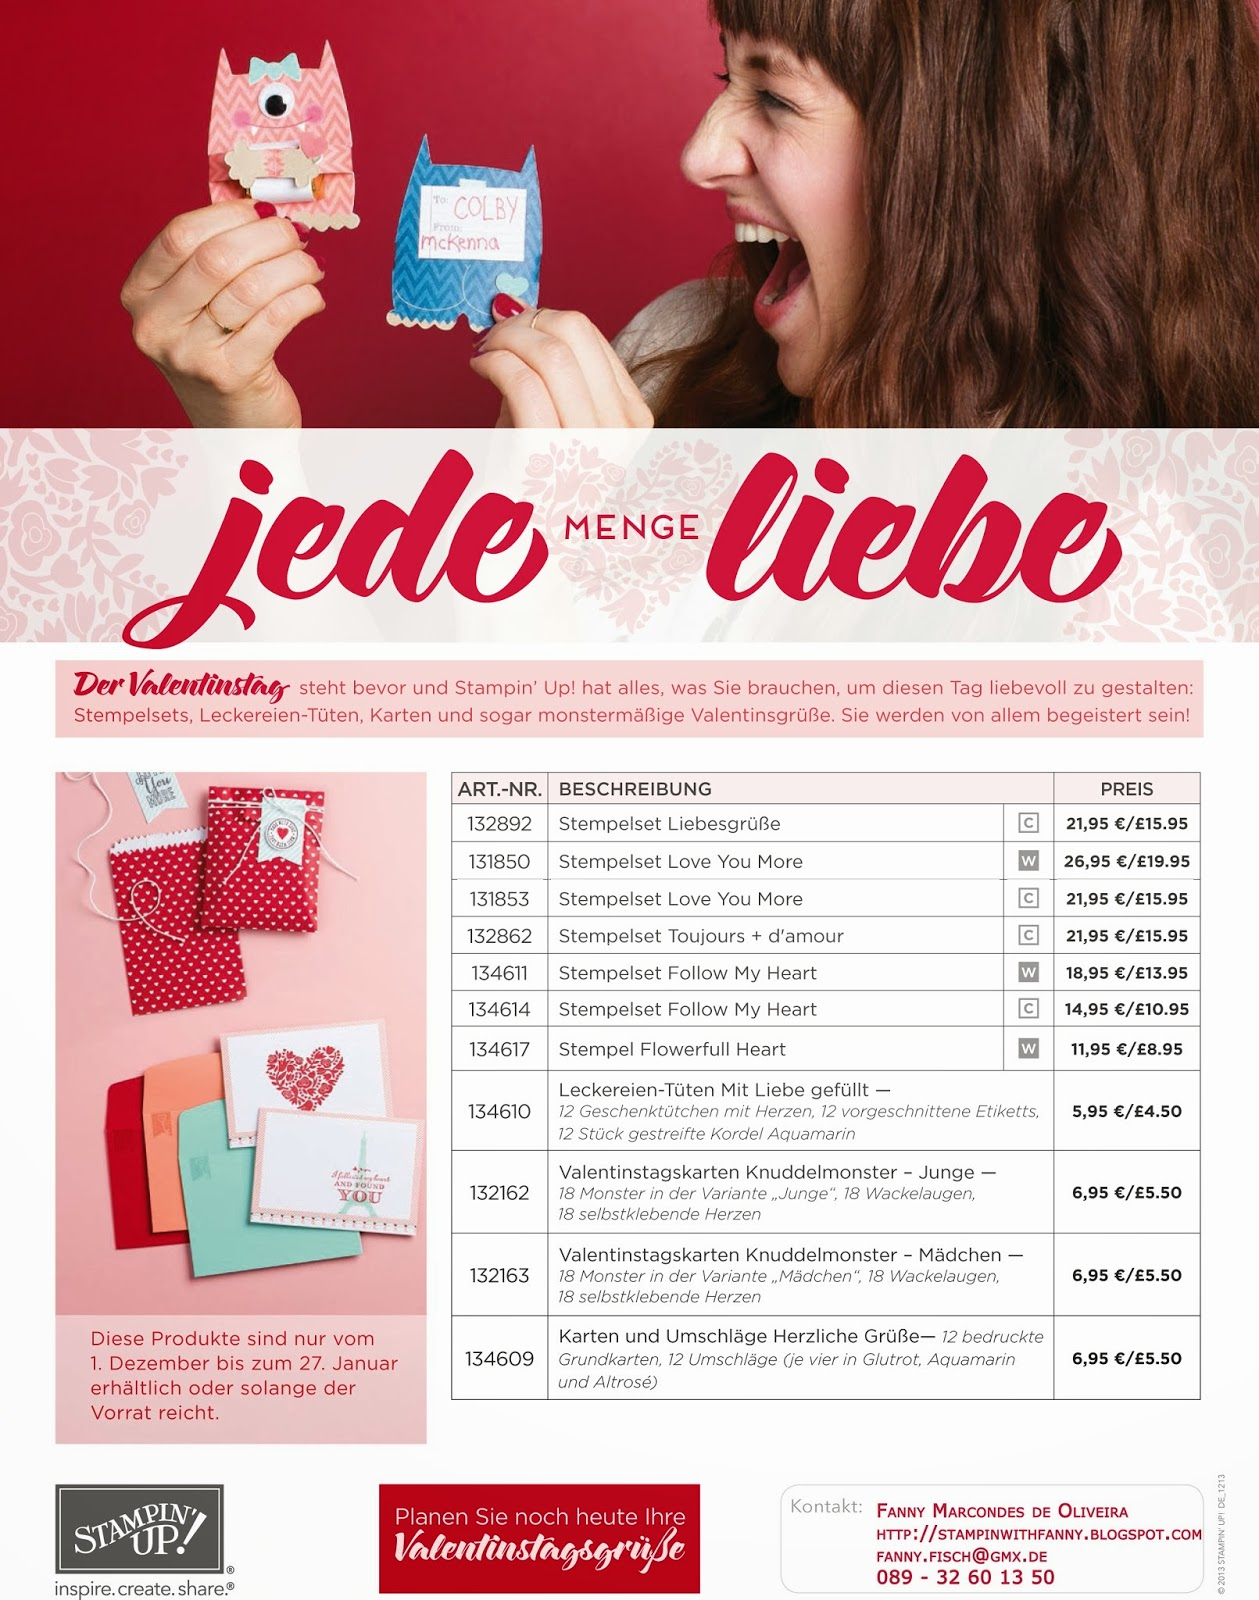 http://stampinwithfanny.blogspot.de/2013/12/aktion-von-su-jede-menge-liebe.html#more